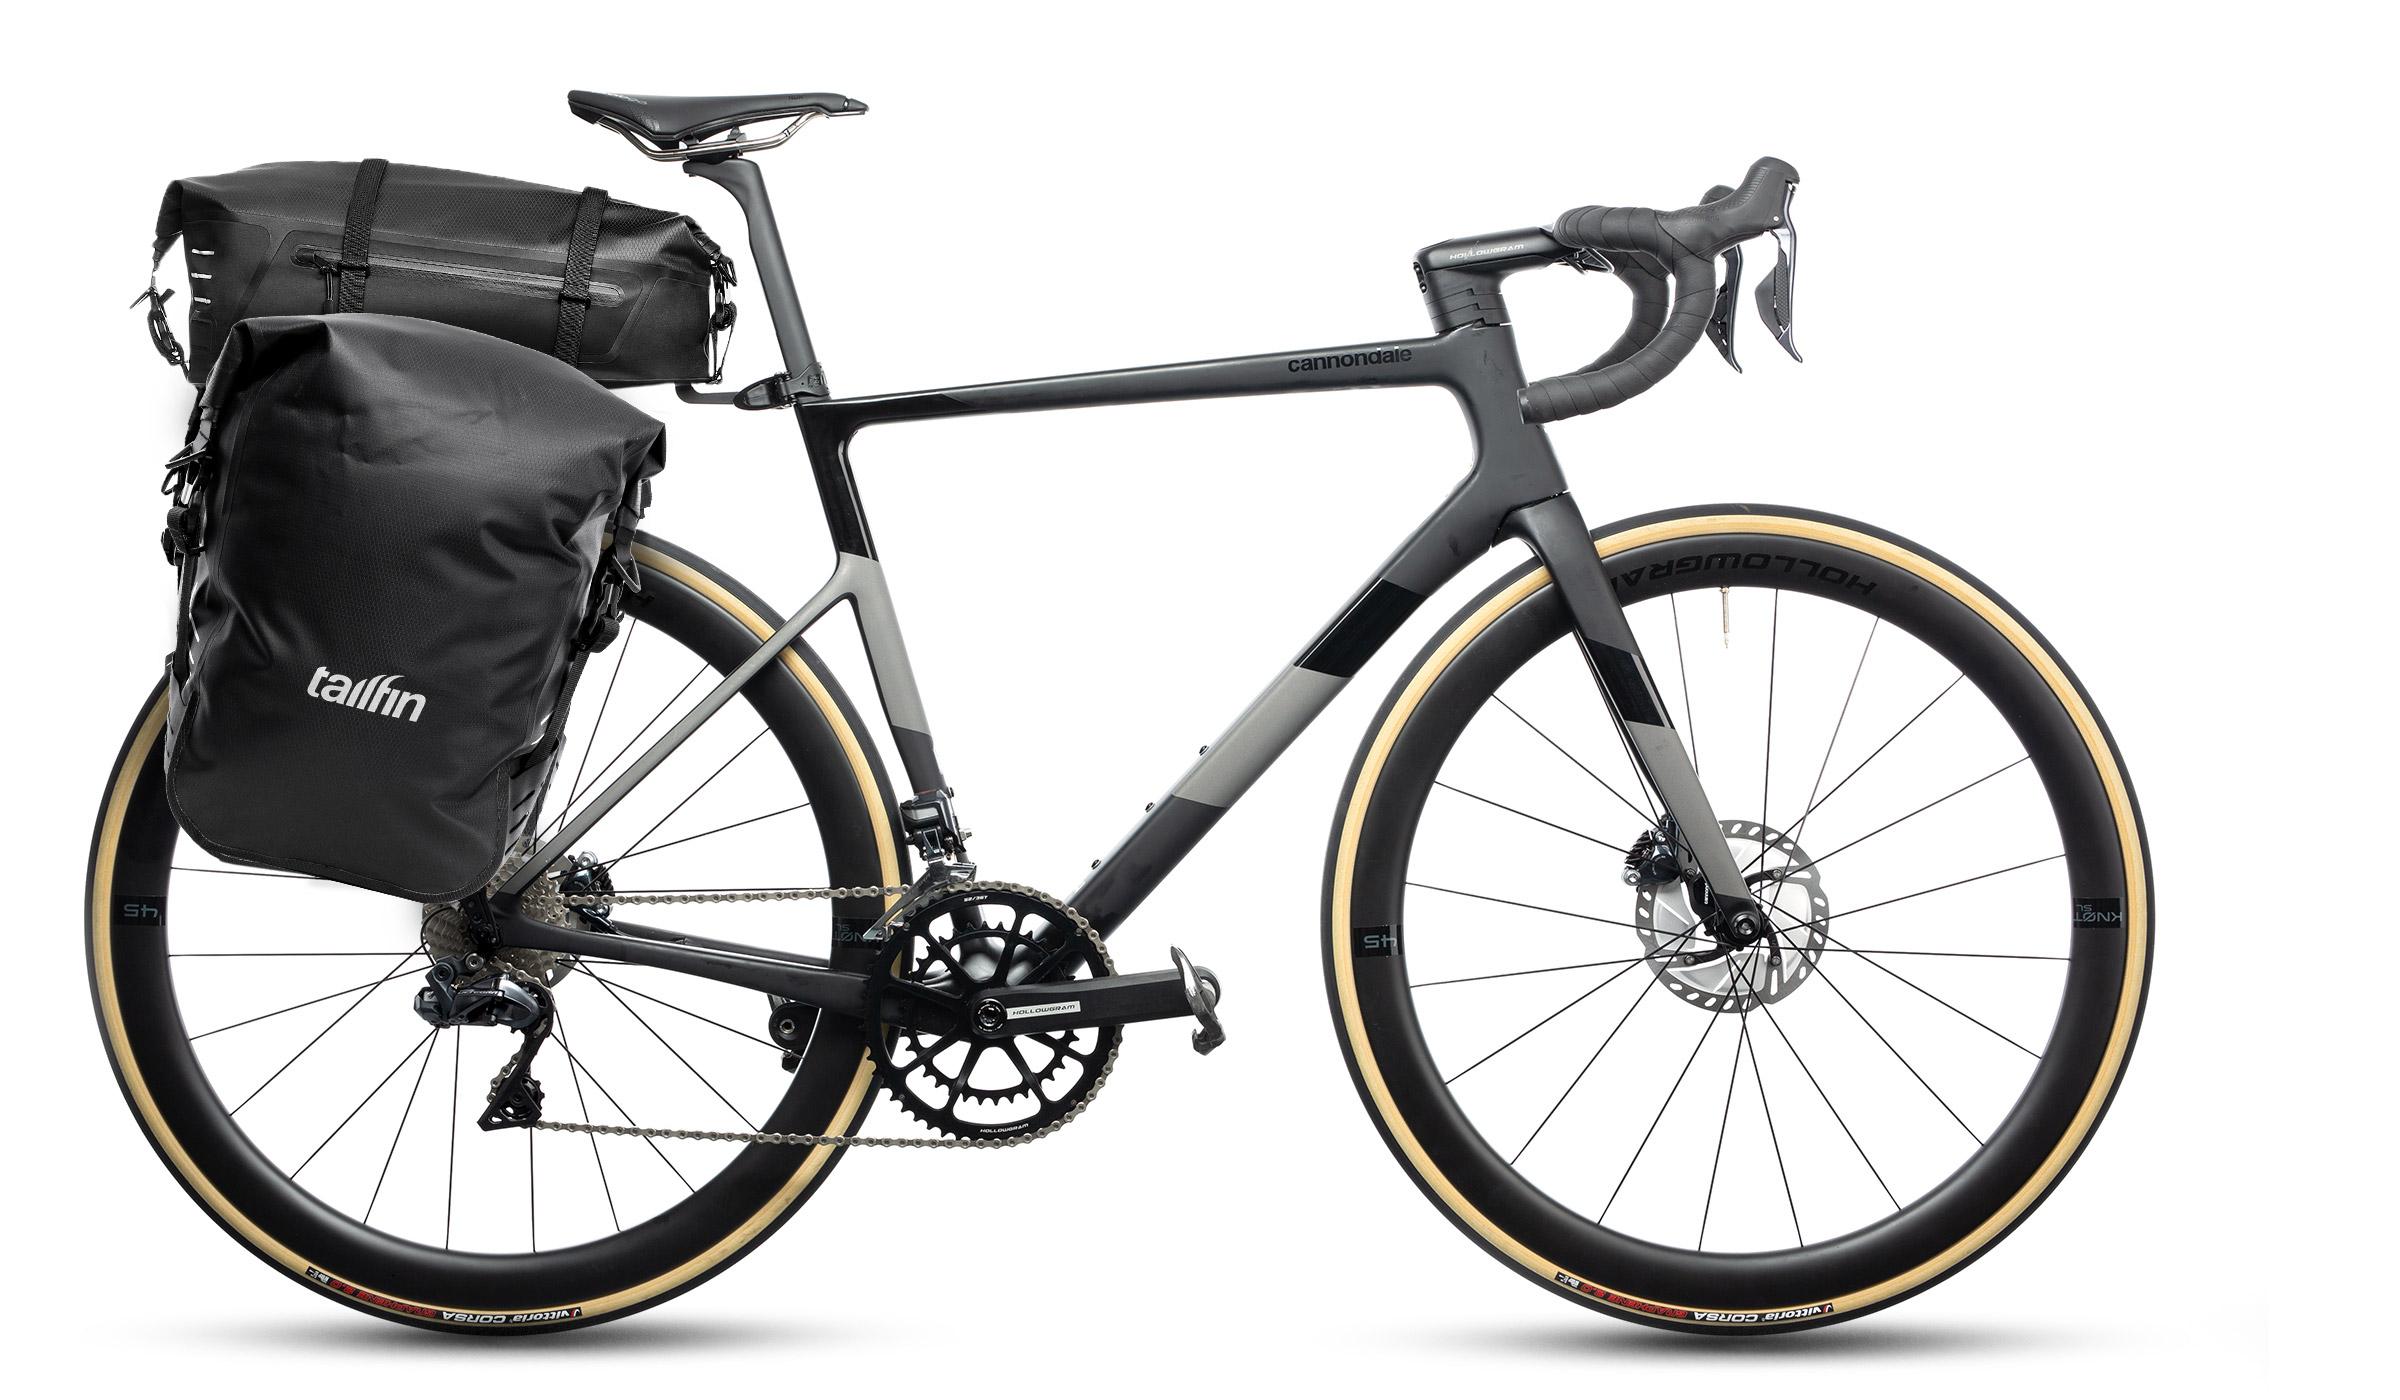 RACK WITH PANNIERS